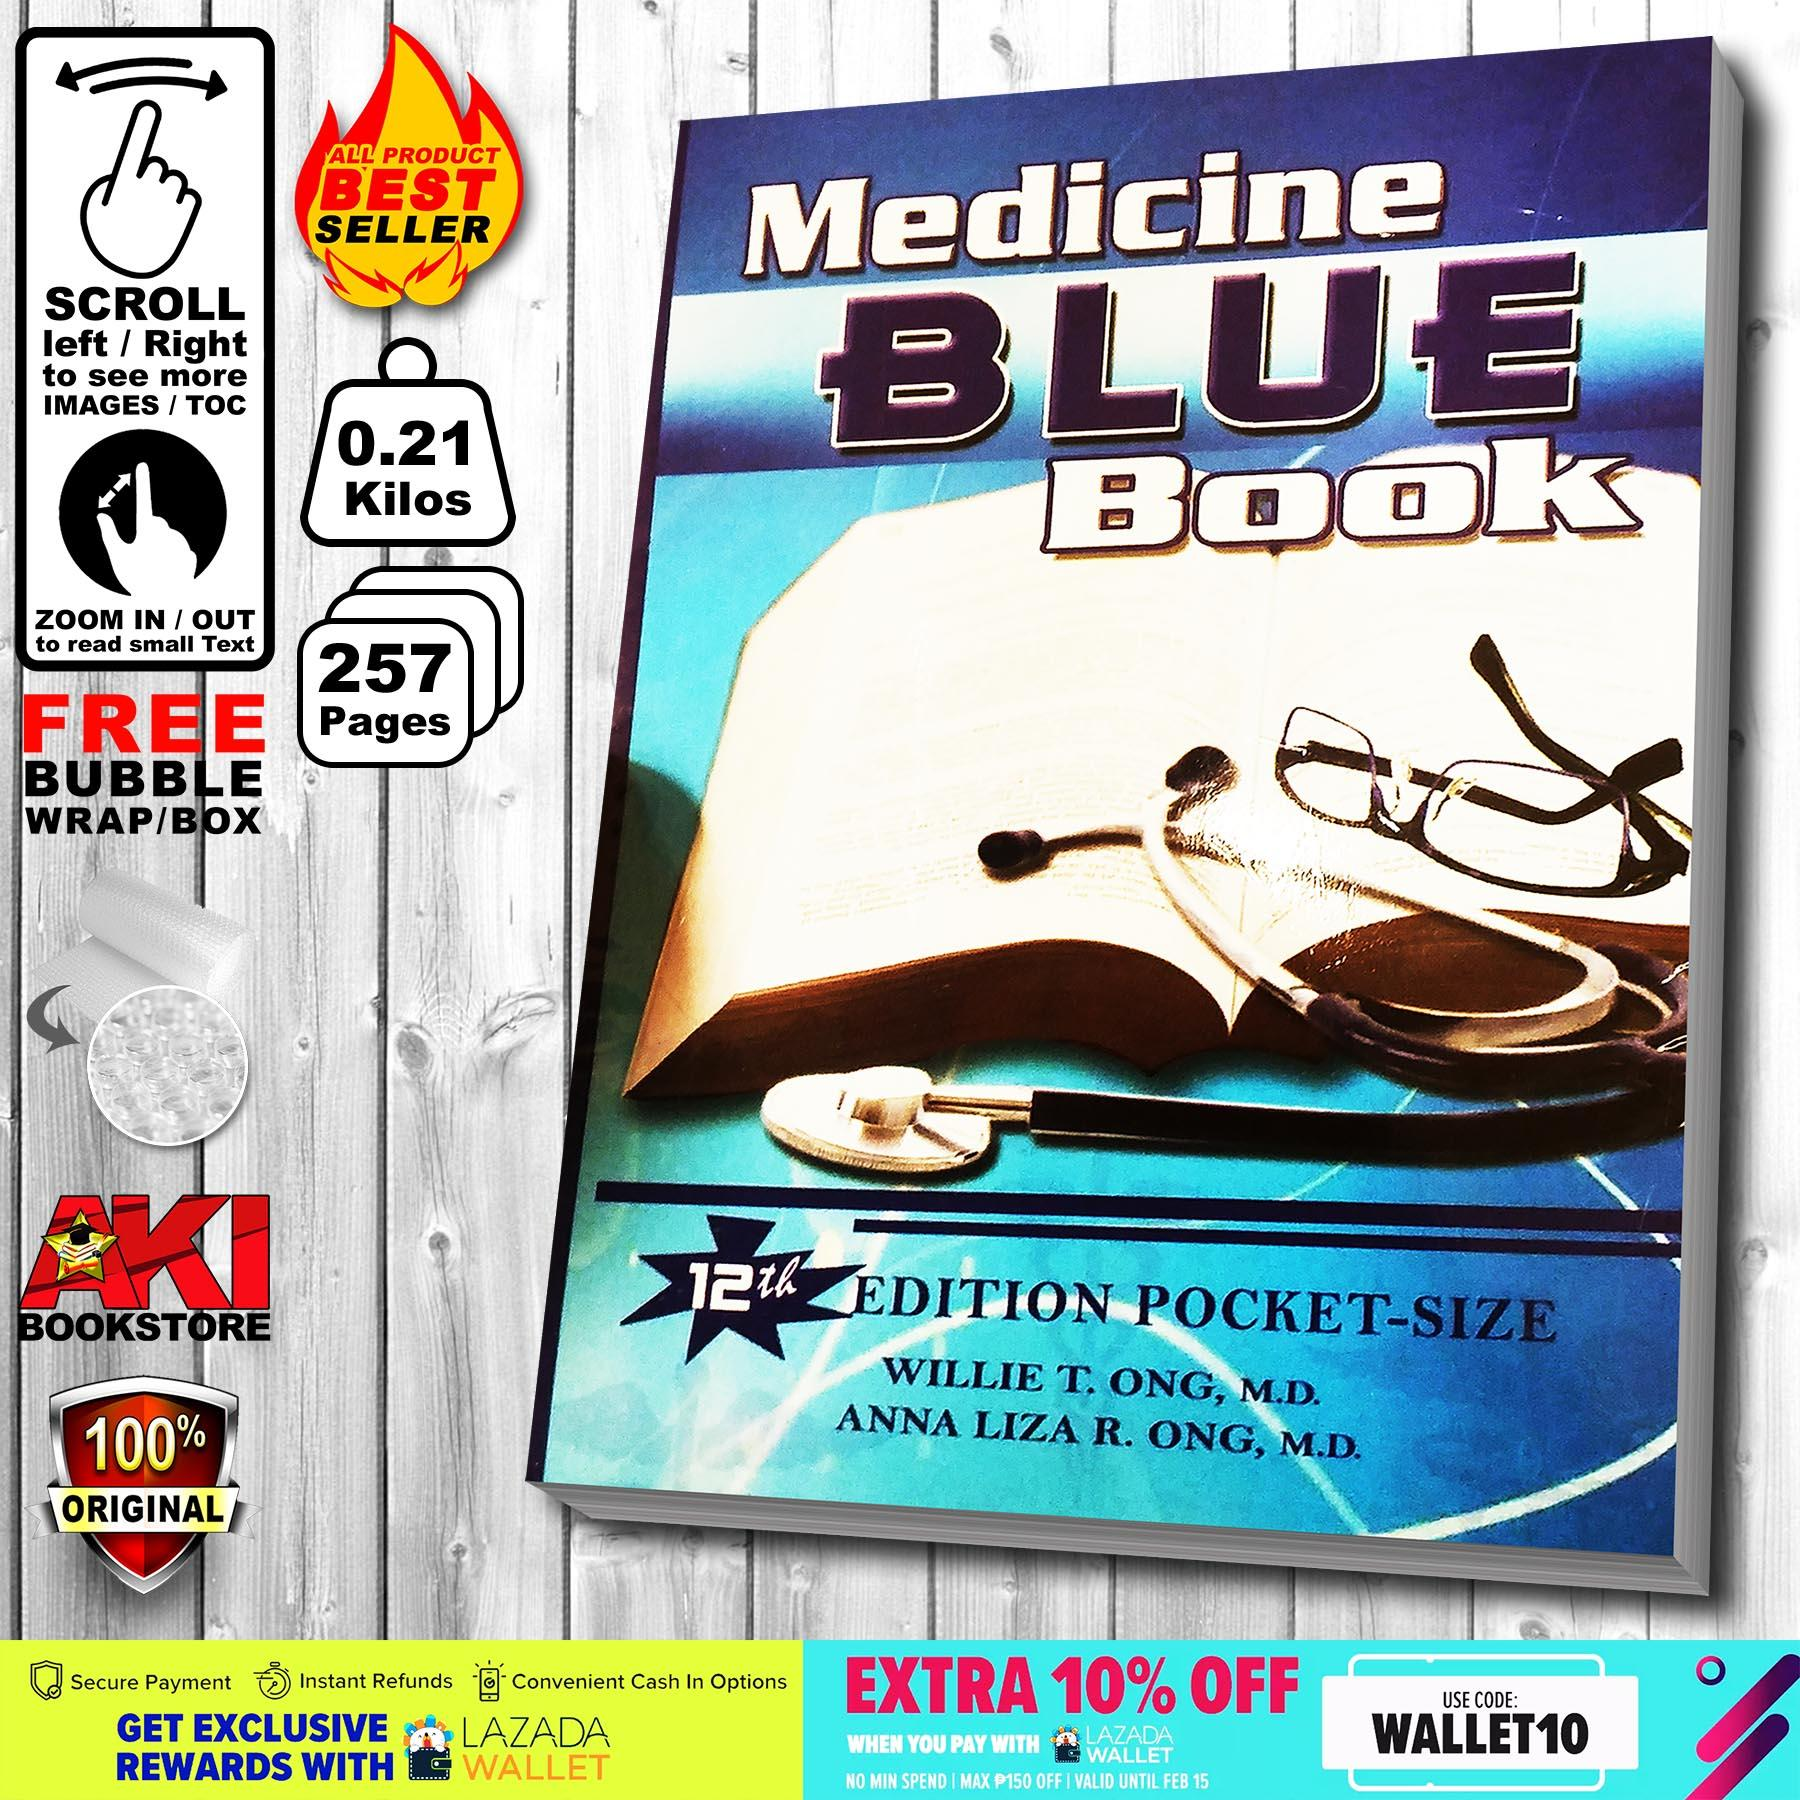 Authentic Medicine Blue Book 12th Edition Pocket-Size Willie T. Ong & Anna Liza R. Ong By Aki Merchandise.